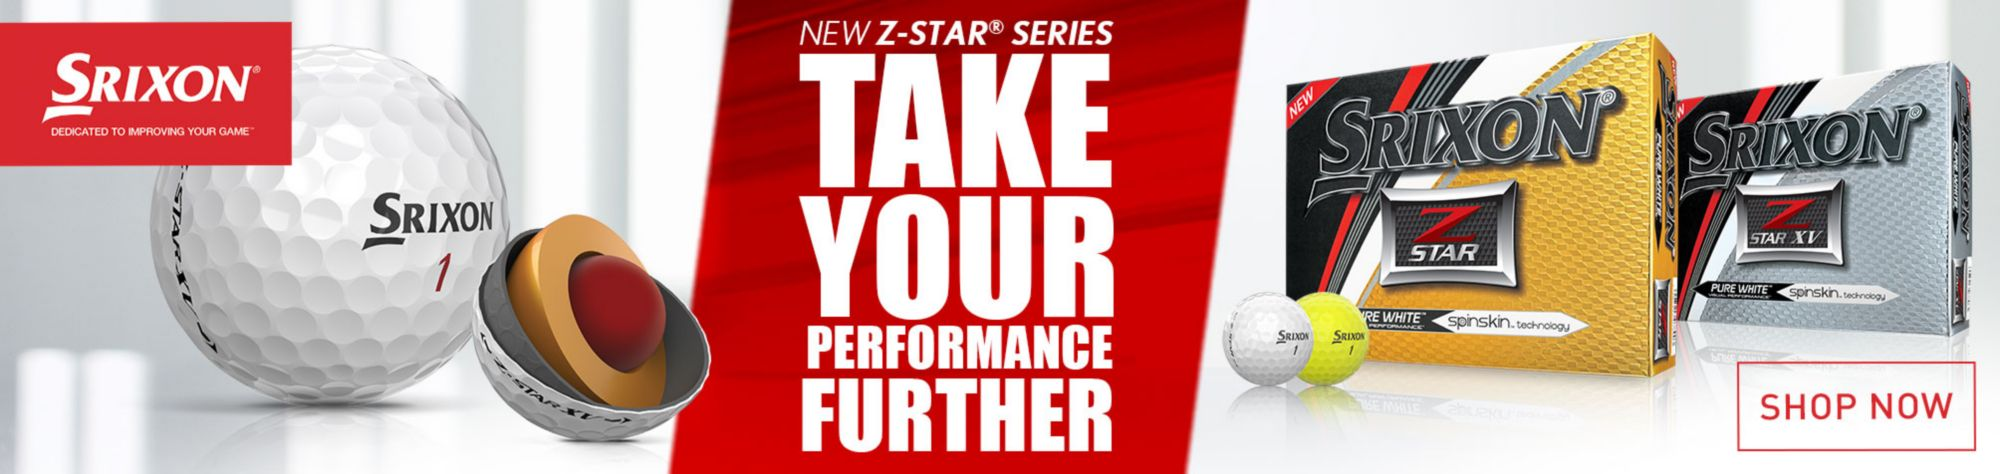 The New Srixon Z-STAR Series Golf Balls